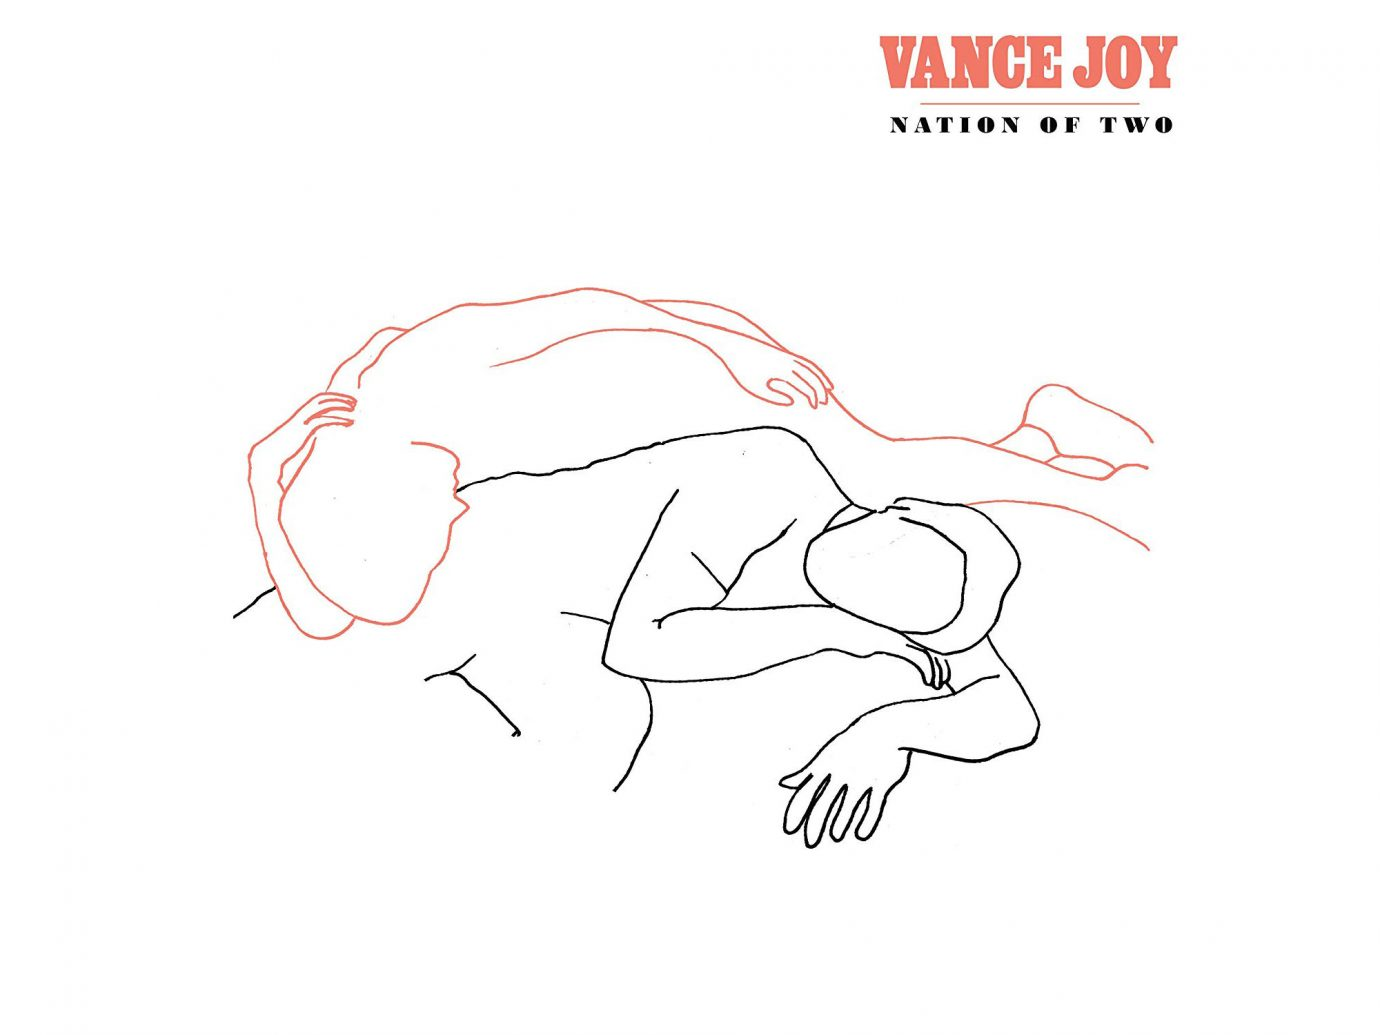 Nation of Two by Vance Joy